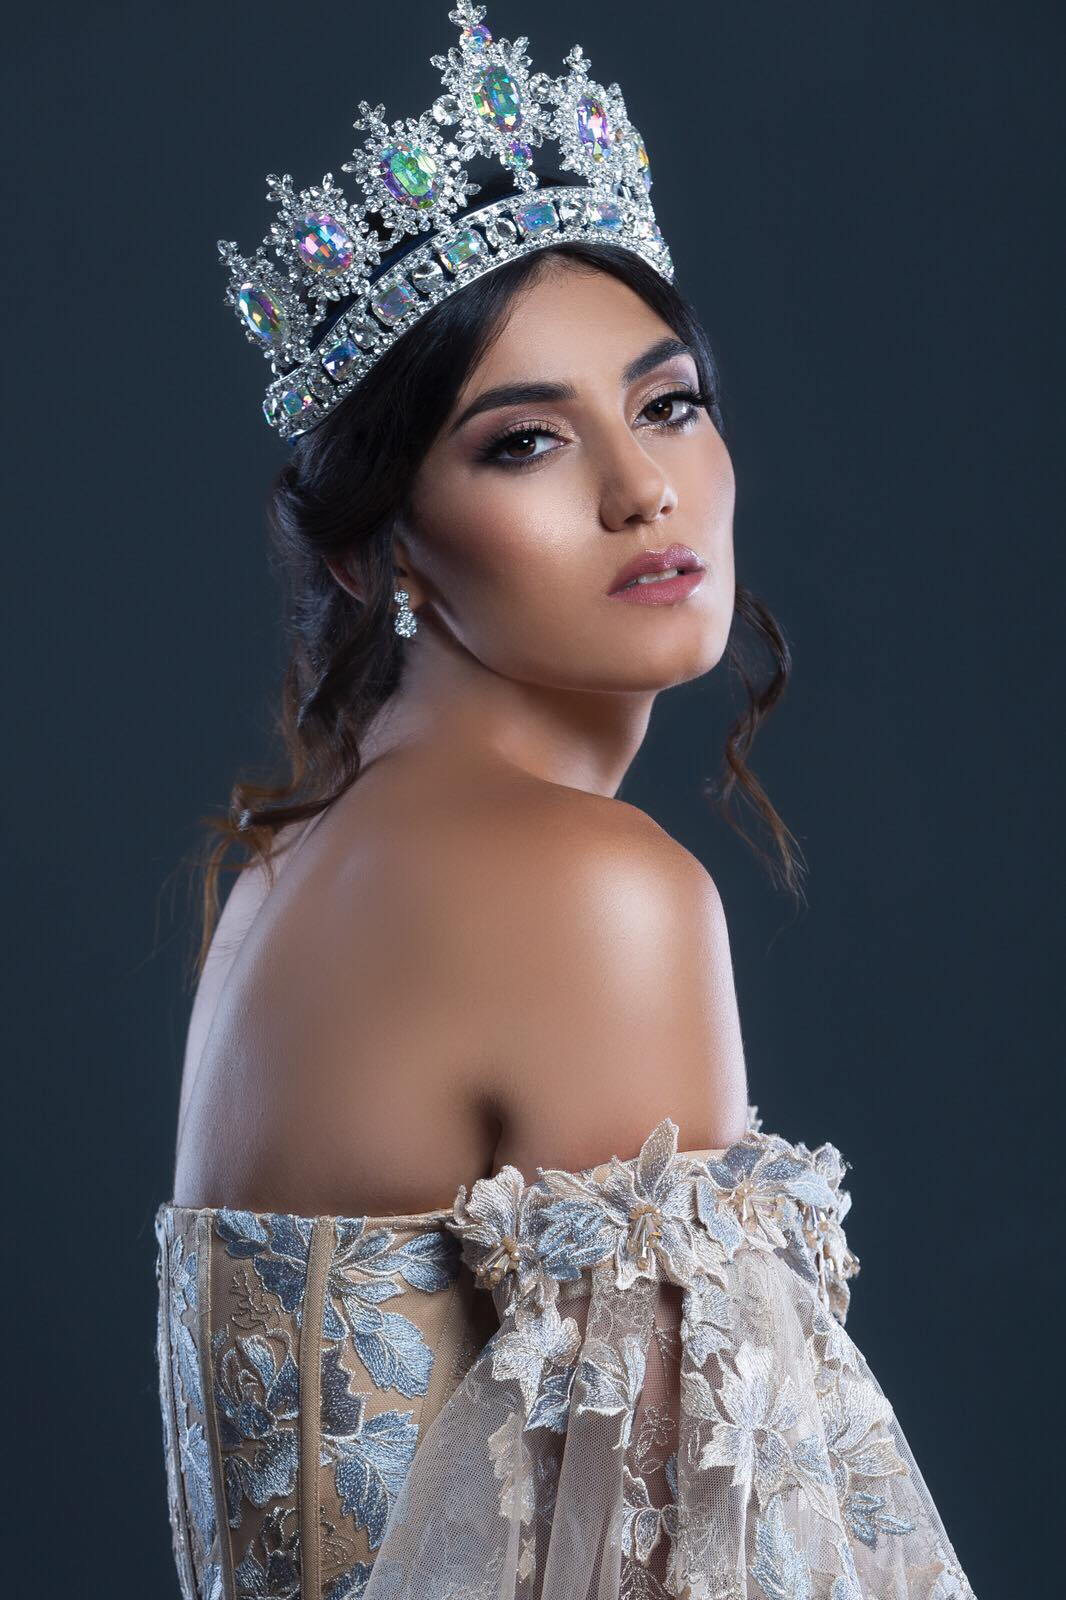 FRANCESCA MIFSUD - There are very few delegates that I have met in my time competing that are as passionate about sharing the beauty of their country and their people. Thank you for understanding what it takes to be a true queen! I wish I could have met you during our time at Intercontinental but I will always cheer you on.